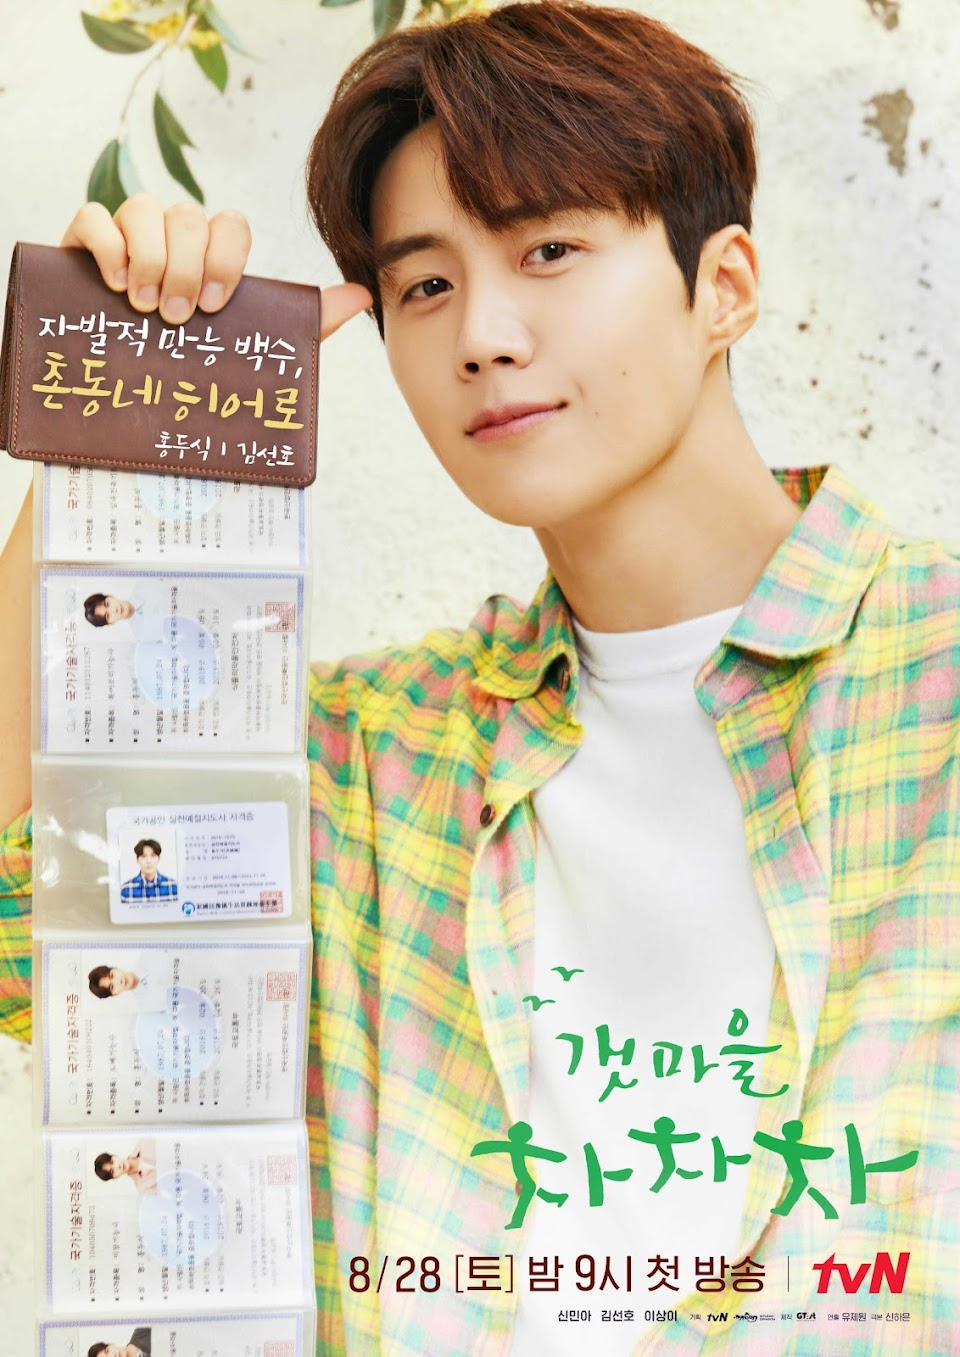 HomeTown-ChaChaCha-tvn-drama-2021-official-DooSik-character-poster-scaled